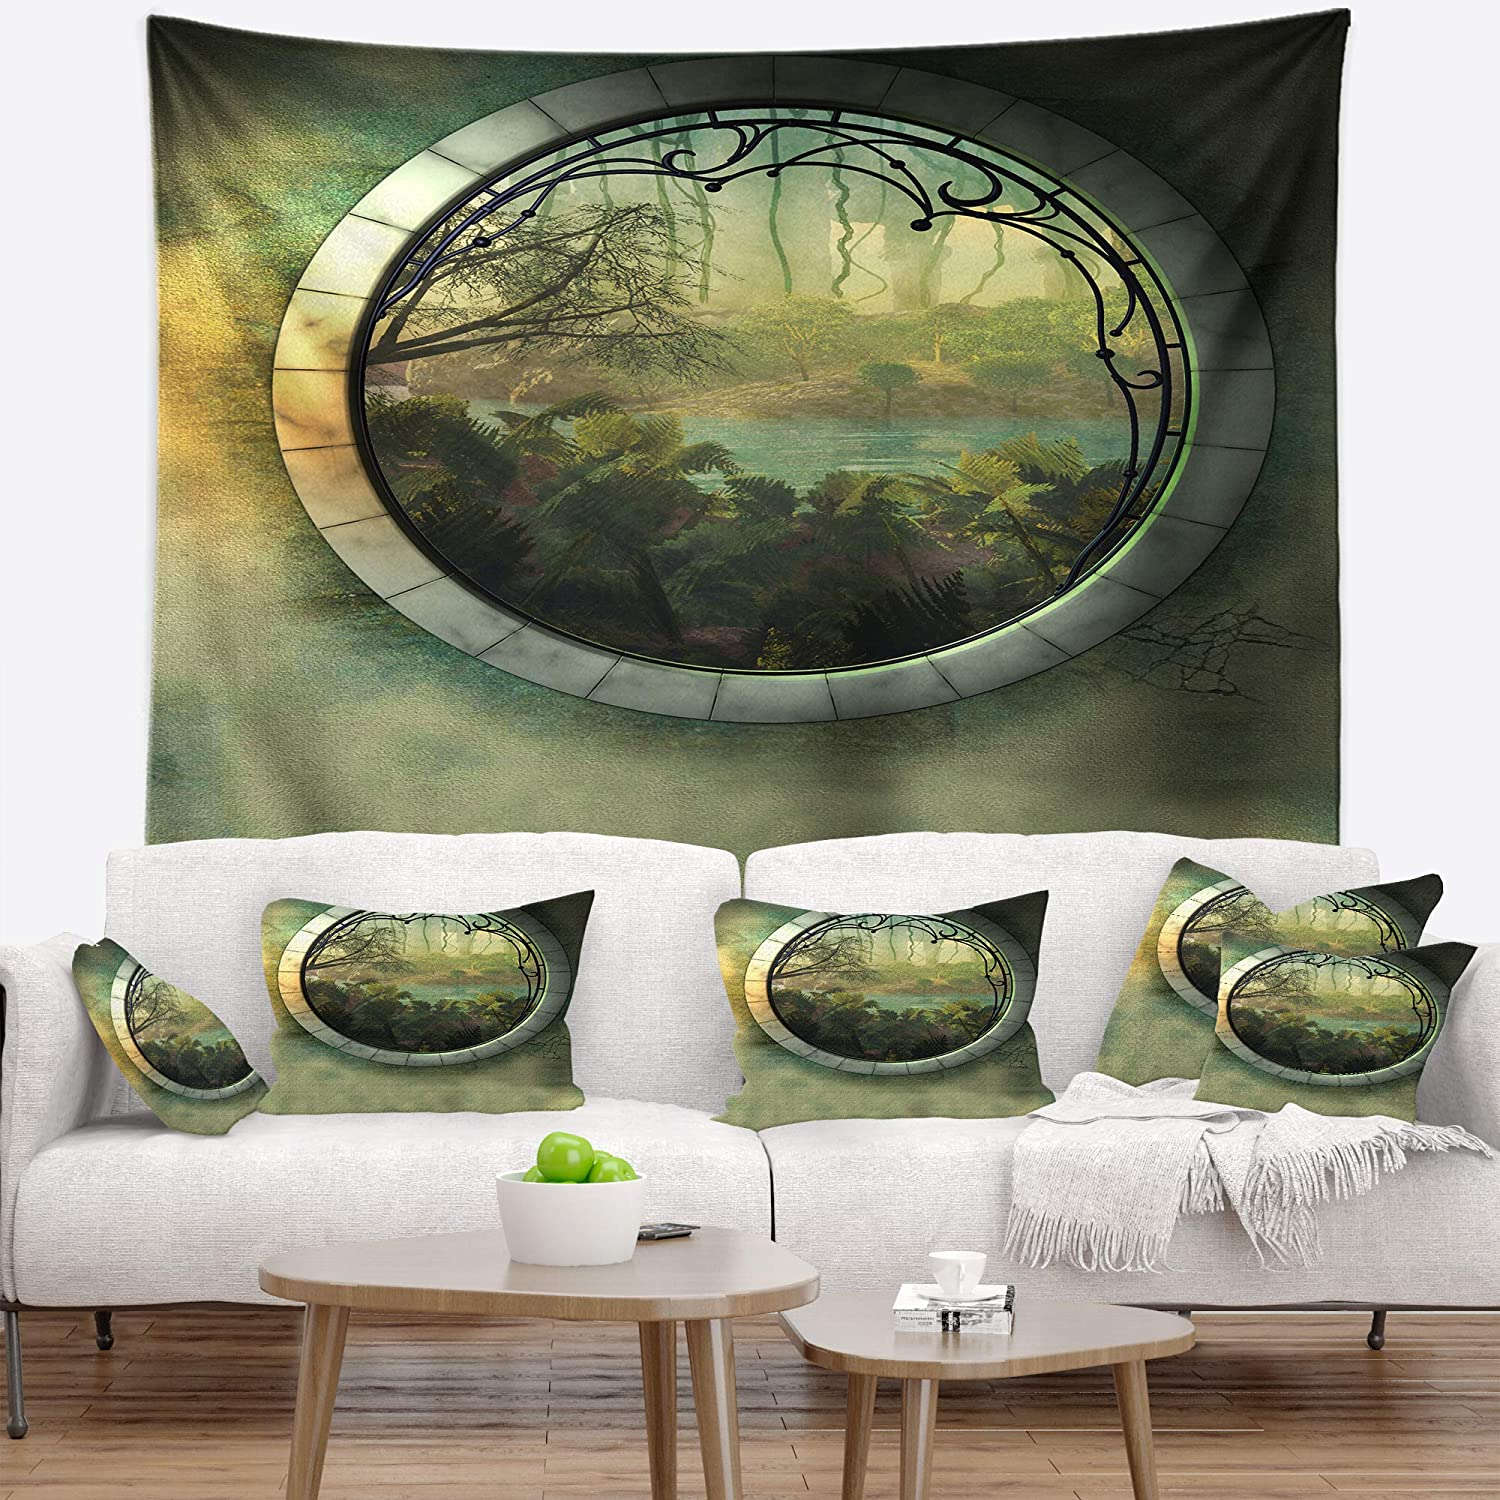 in 50 in x 60 in Designart TAP9579-50-60  Green Fantasy Landscape with Frame Photography Blanket D/écor Art for Home and Office Wall Tapestry Large